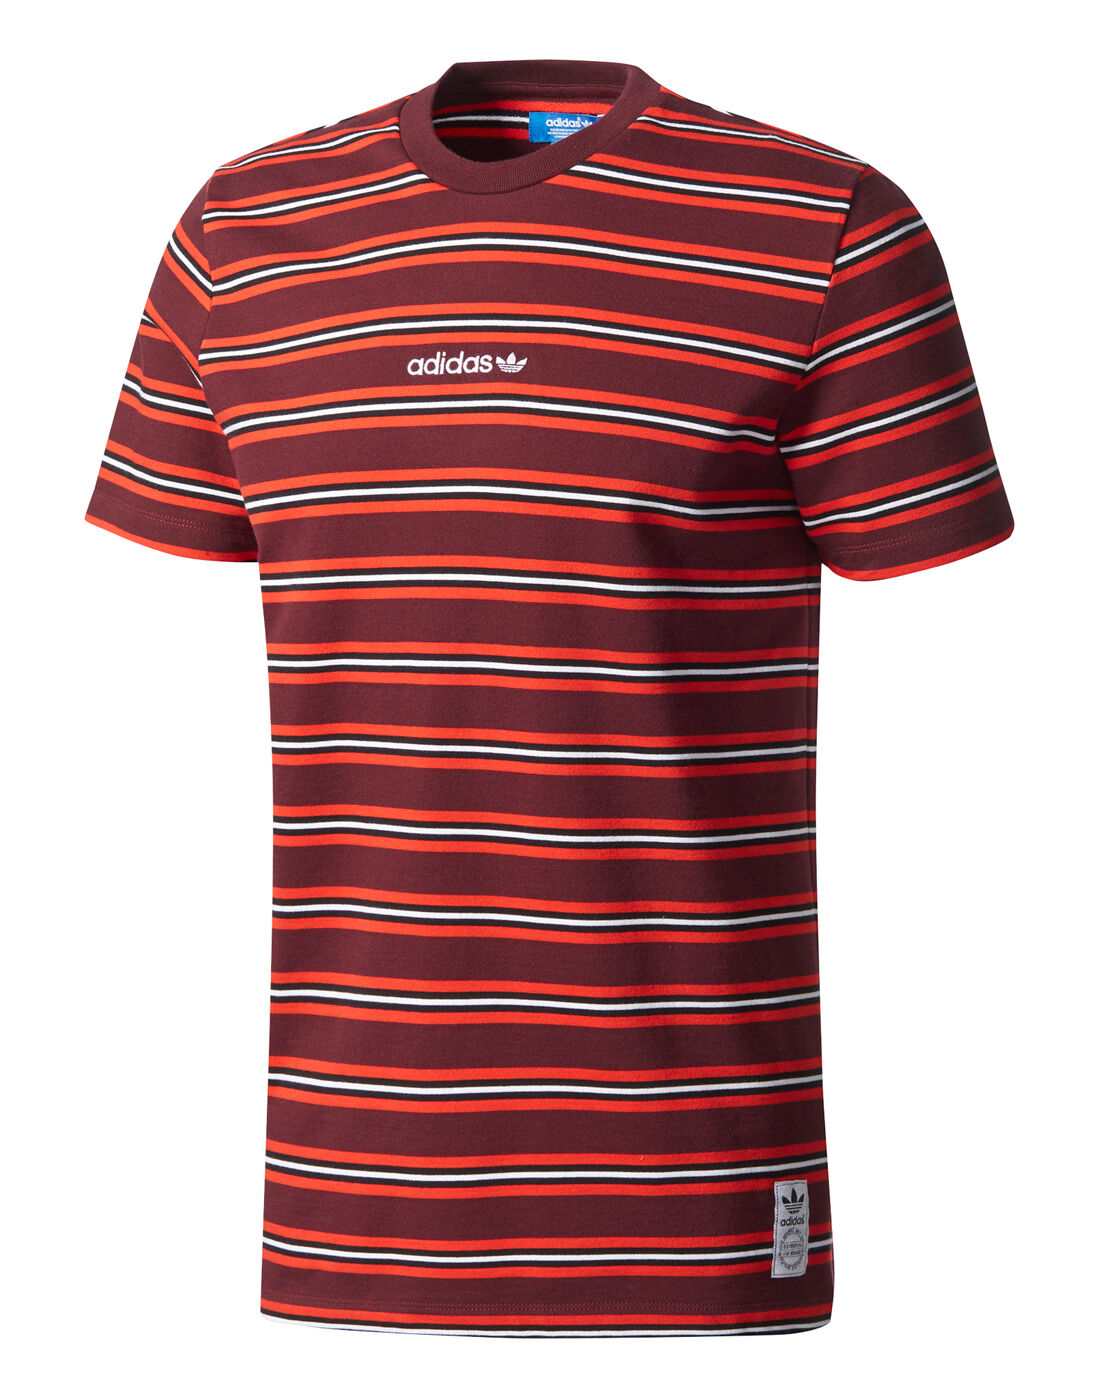 Pete Mens Style ShirtLife T Sports Adidas Originals vN8mwn0O